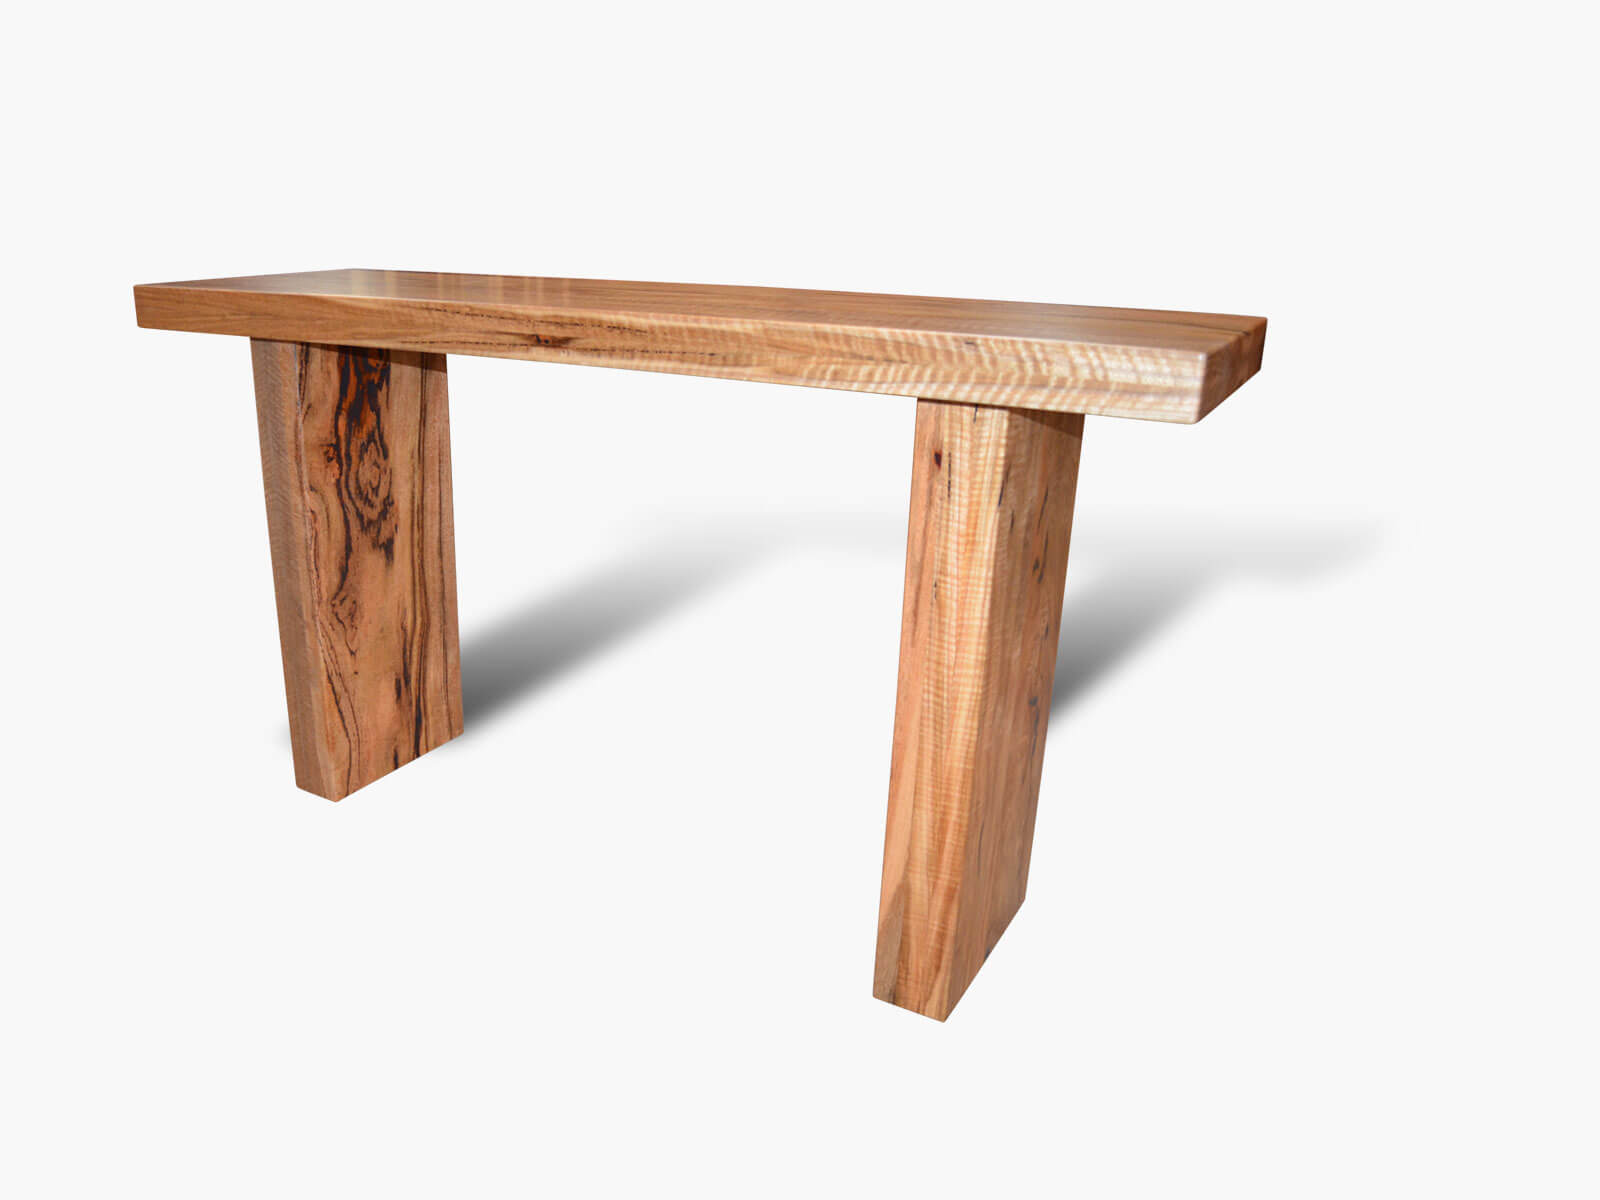 Dampier-Hall Timber Furniture